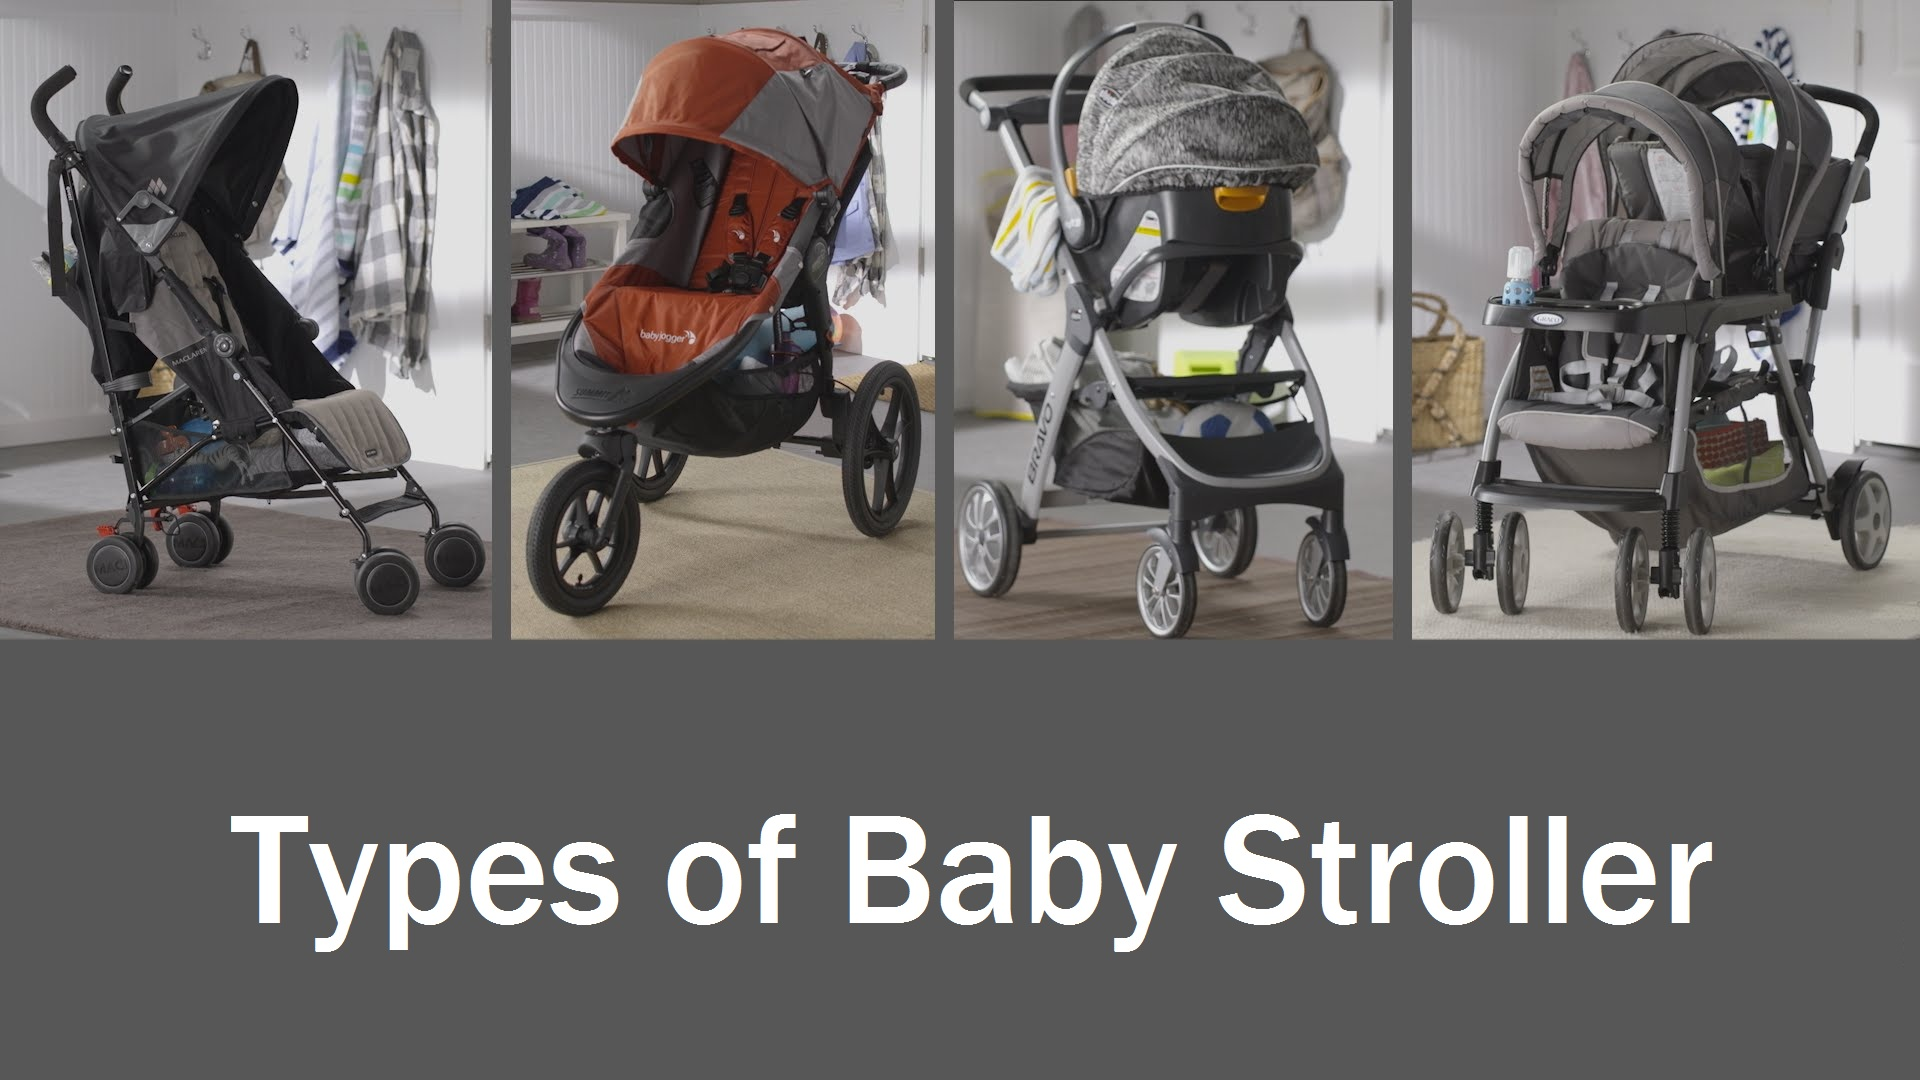 Carriage Type Strollers Baby Stroller Buying Guide Types Of Baby Prams Where To